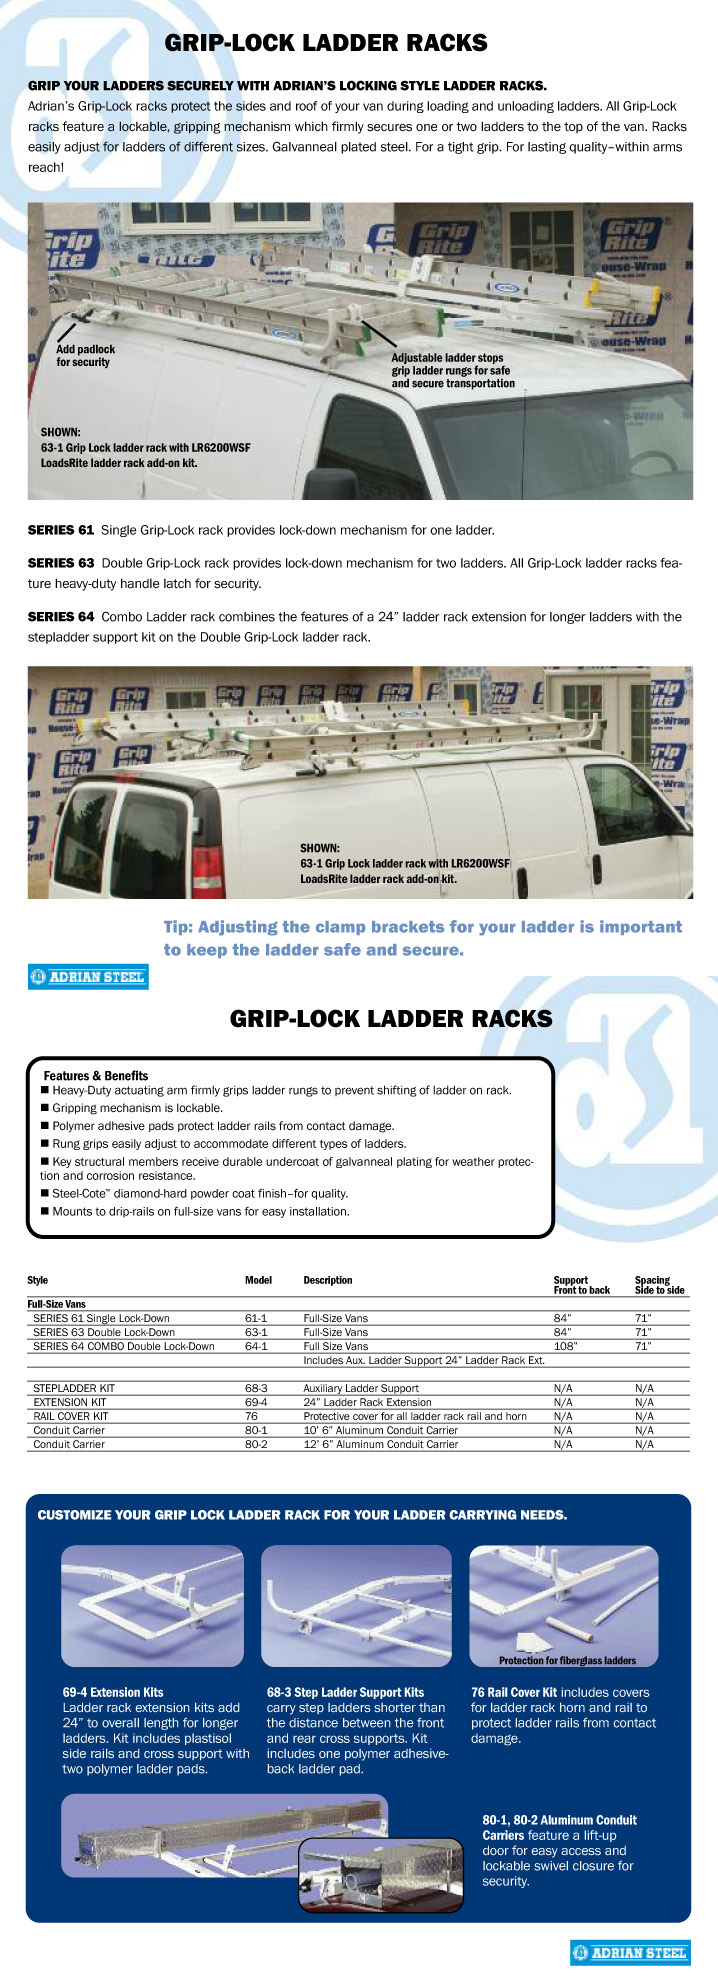 Adrian Steel Grip Lock Ladder Racks GM